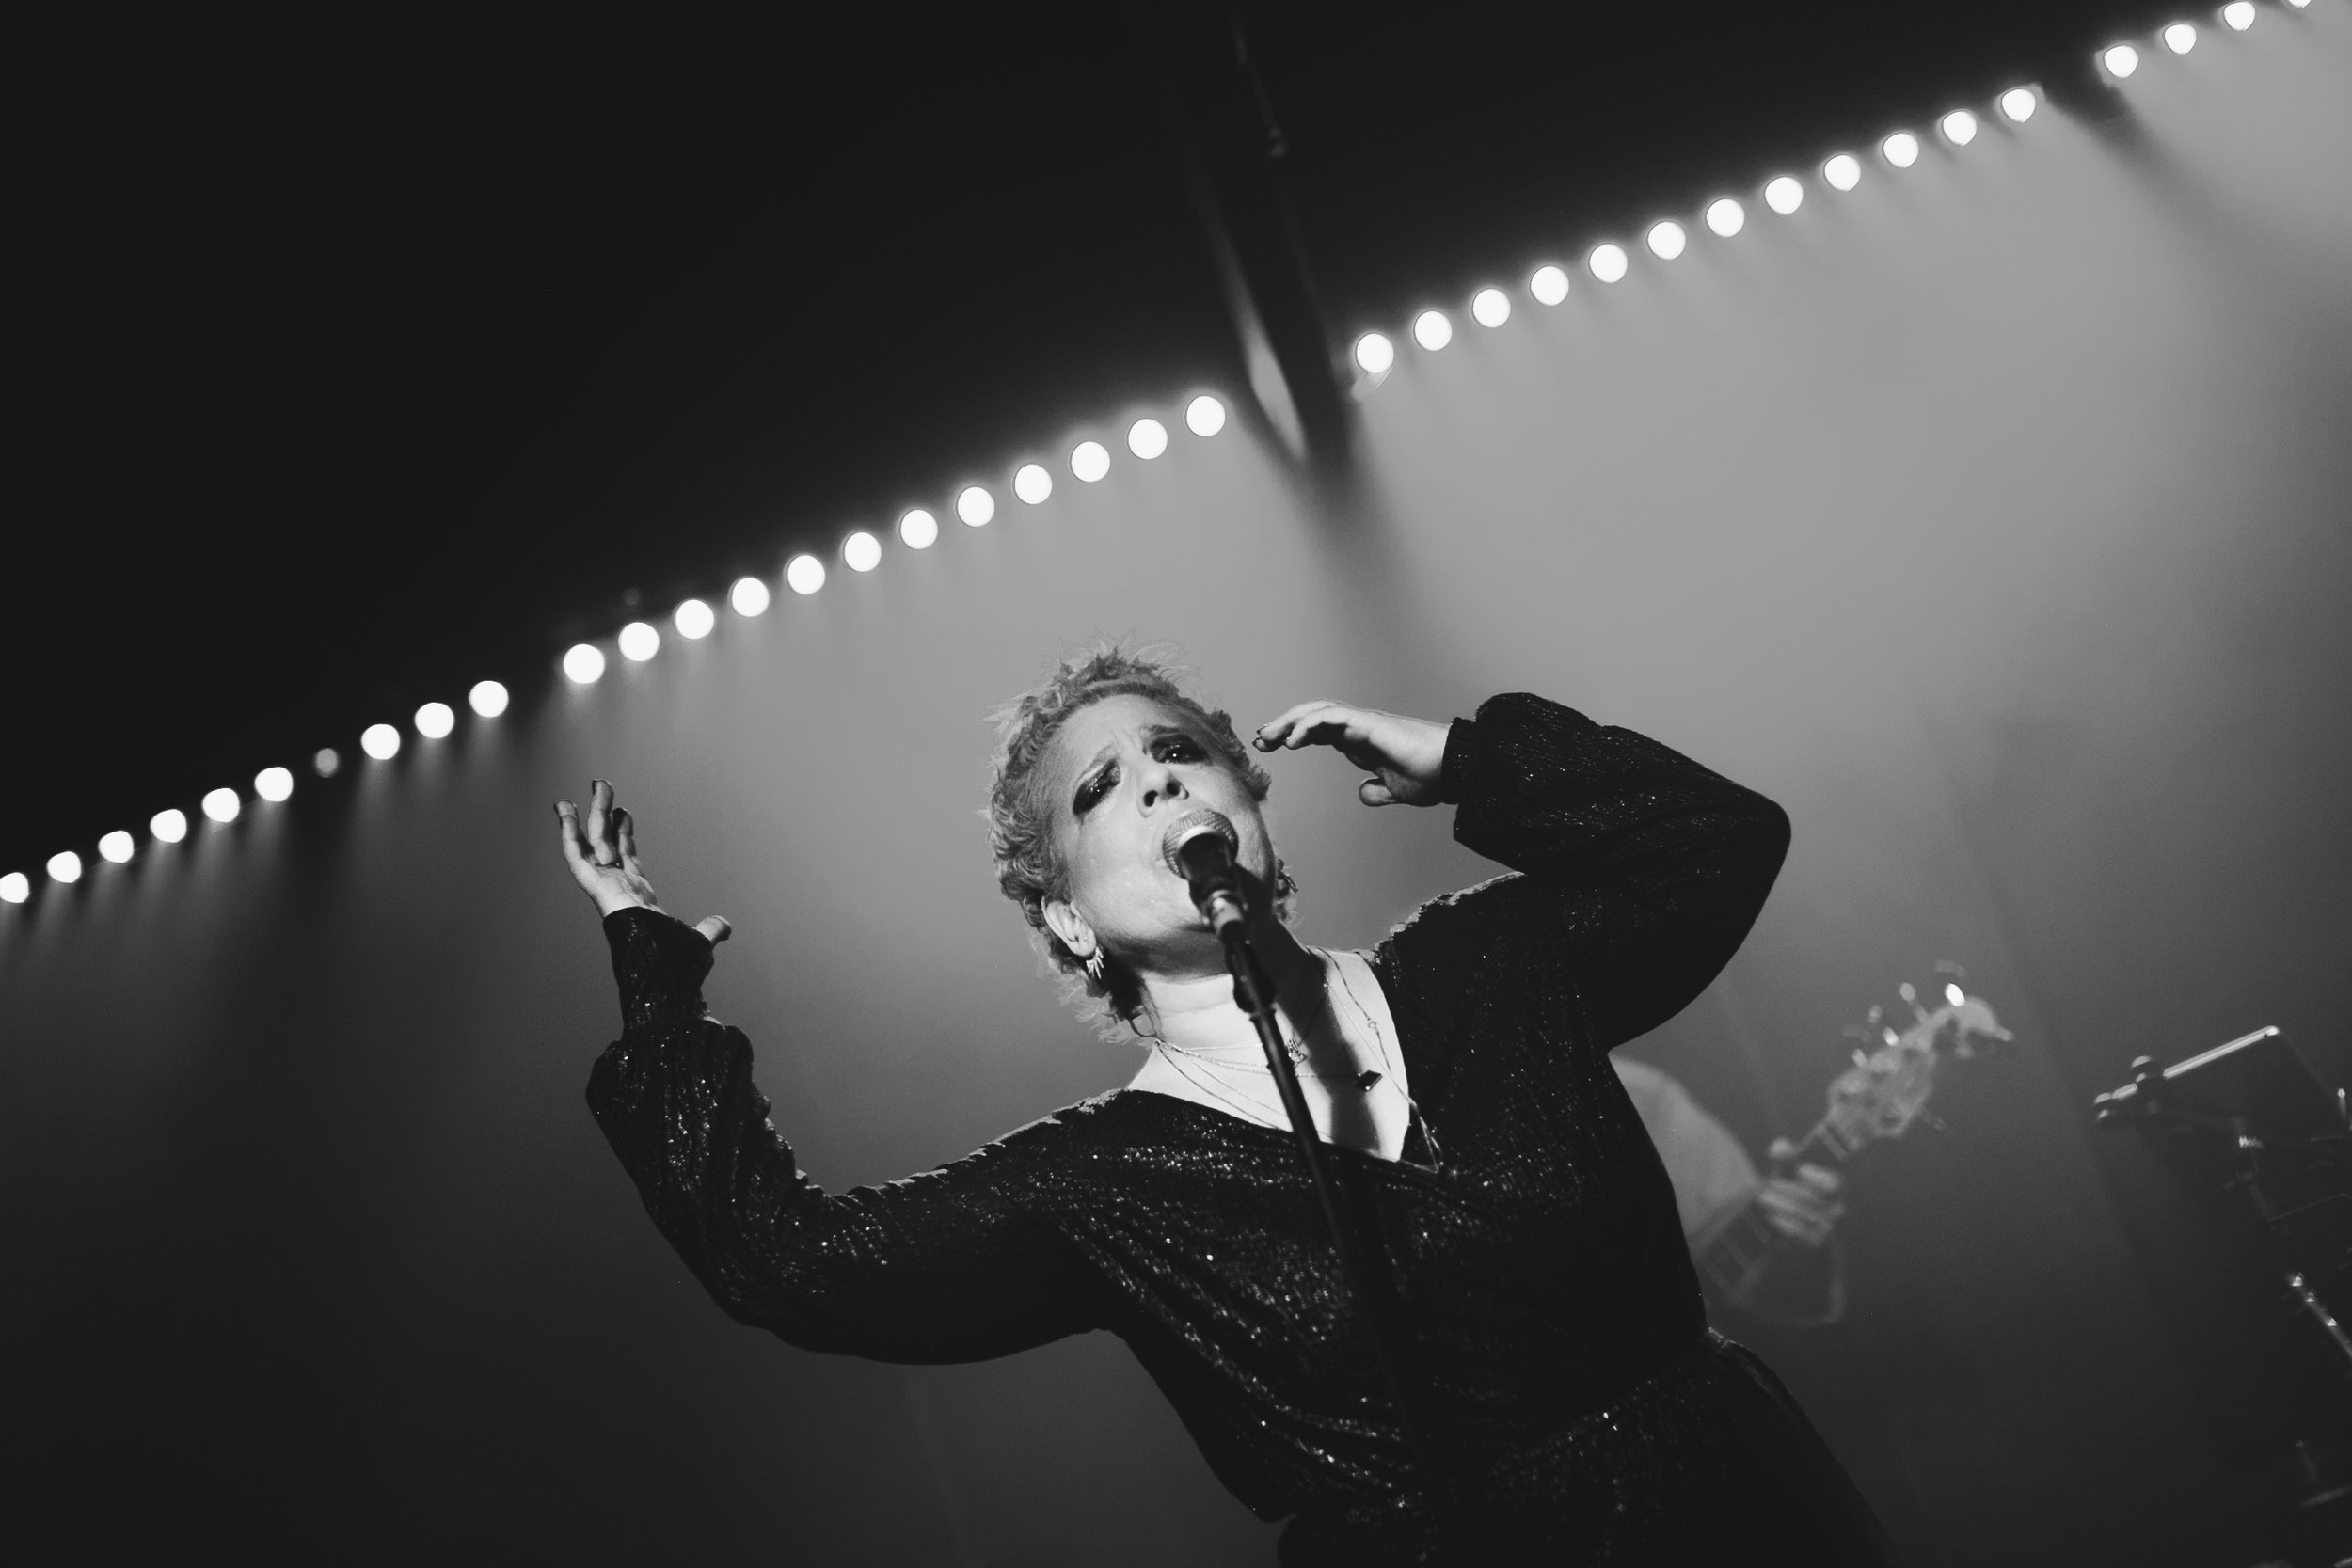 bowie bday 2018 (111 of 181).jpg